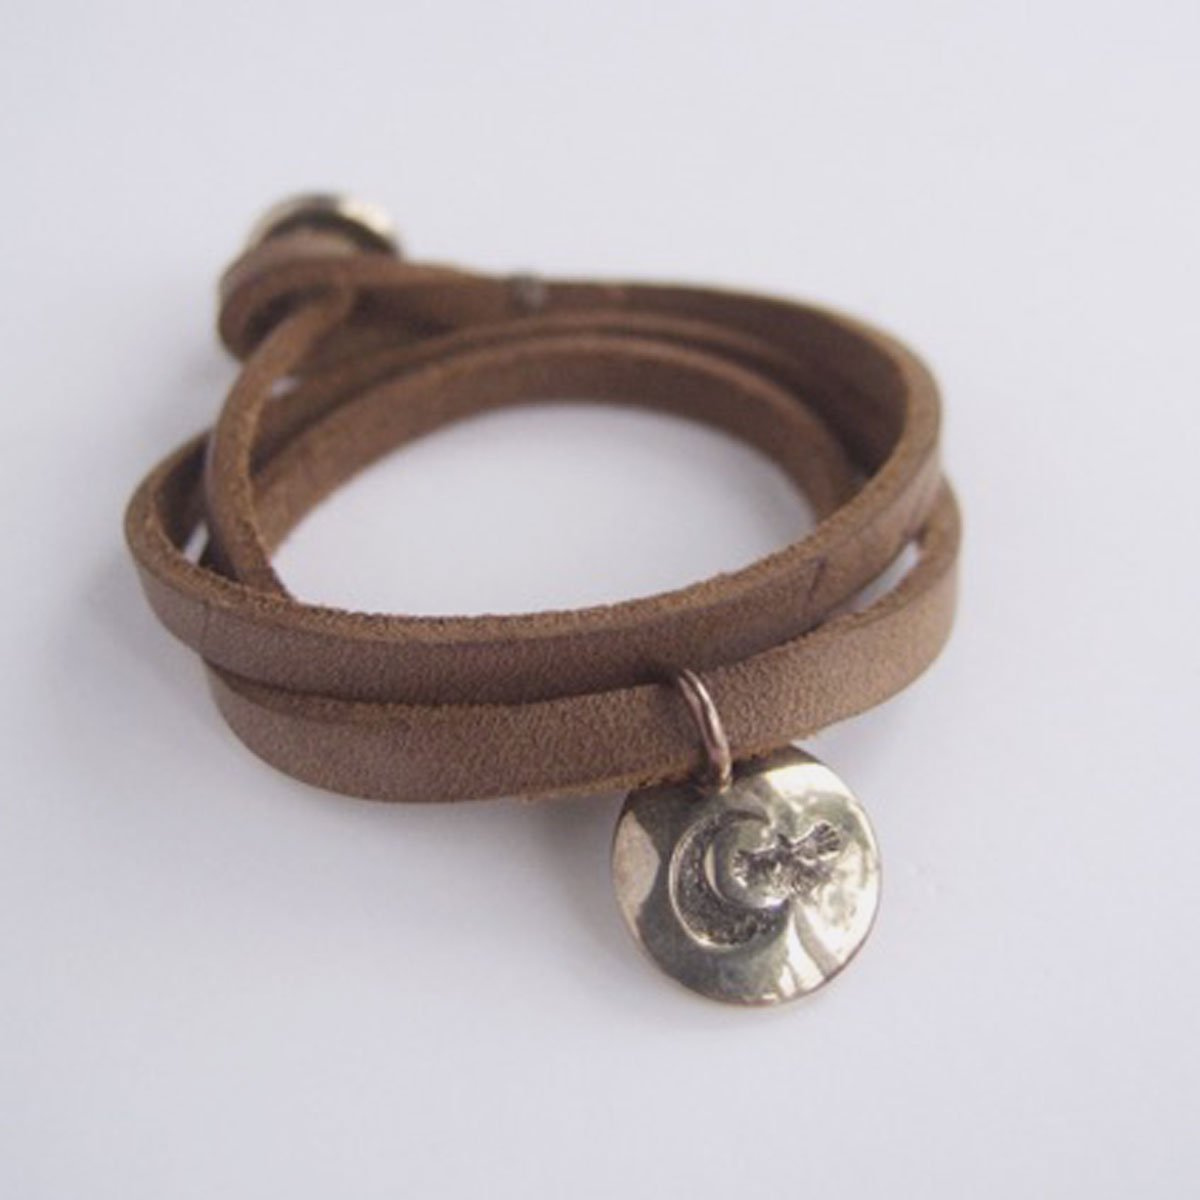 MOTO CONTEMPORARY NATIVE 3連LEATHER BRACELET (NATURAL)4